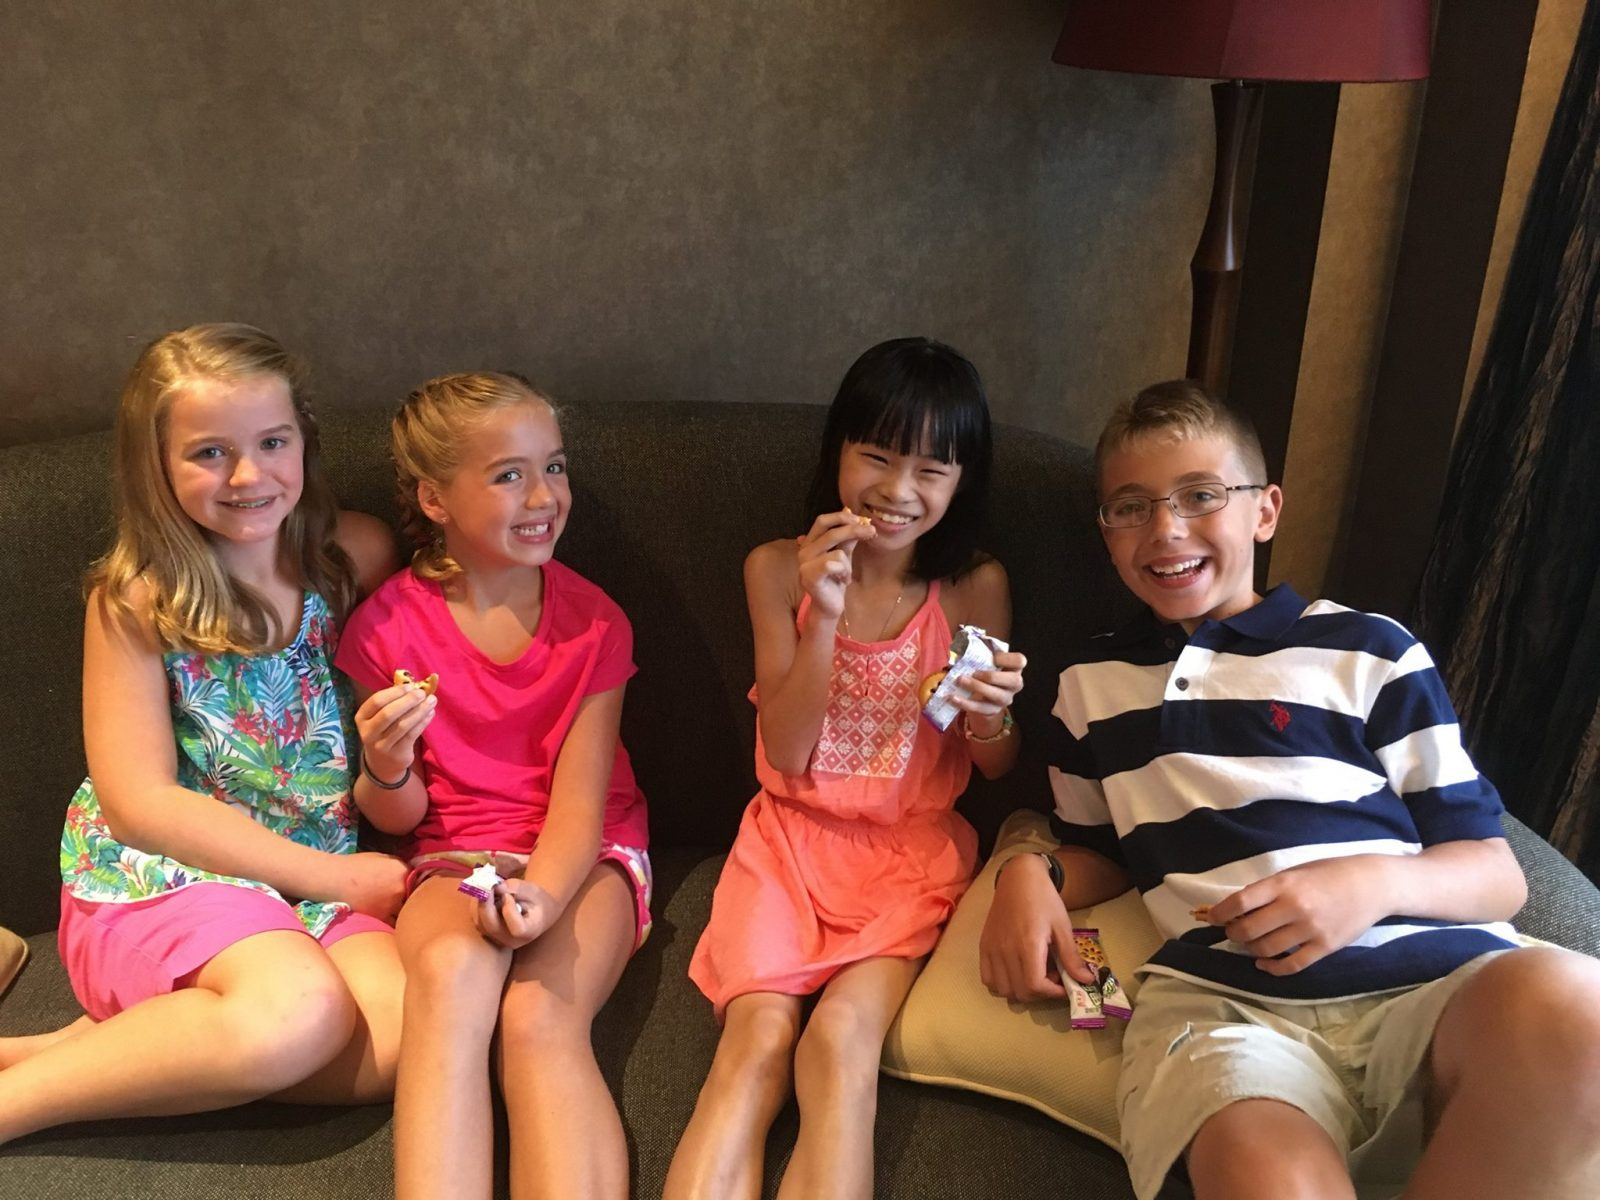 Fen, center, with her new siblings after they met in China. Two more siblings are waiting at home in Lockport to meet her. (Photo courtesy of the Foster family)